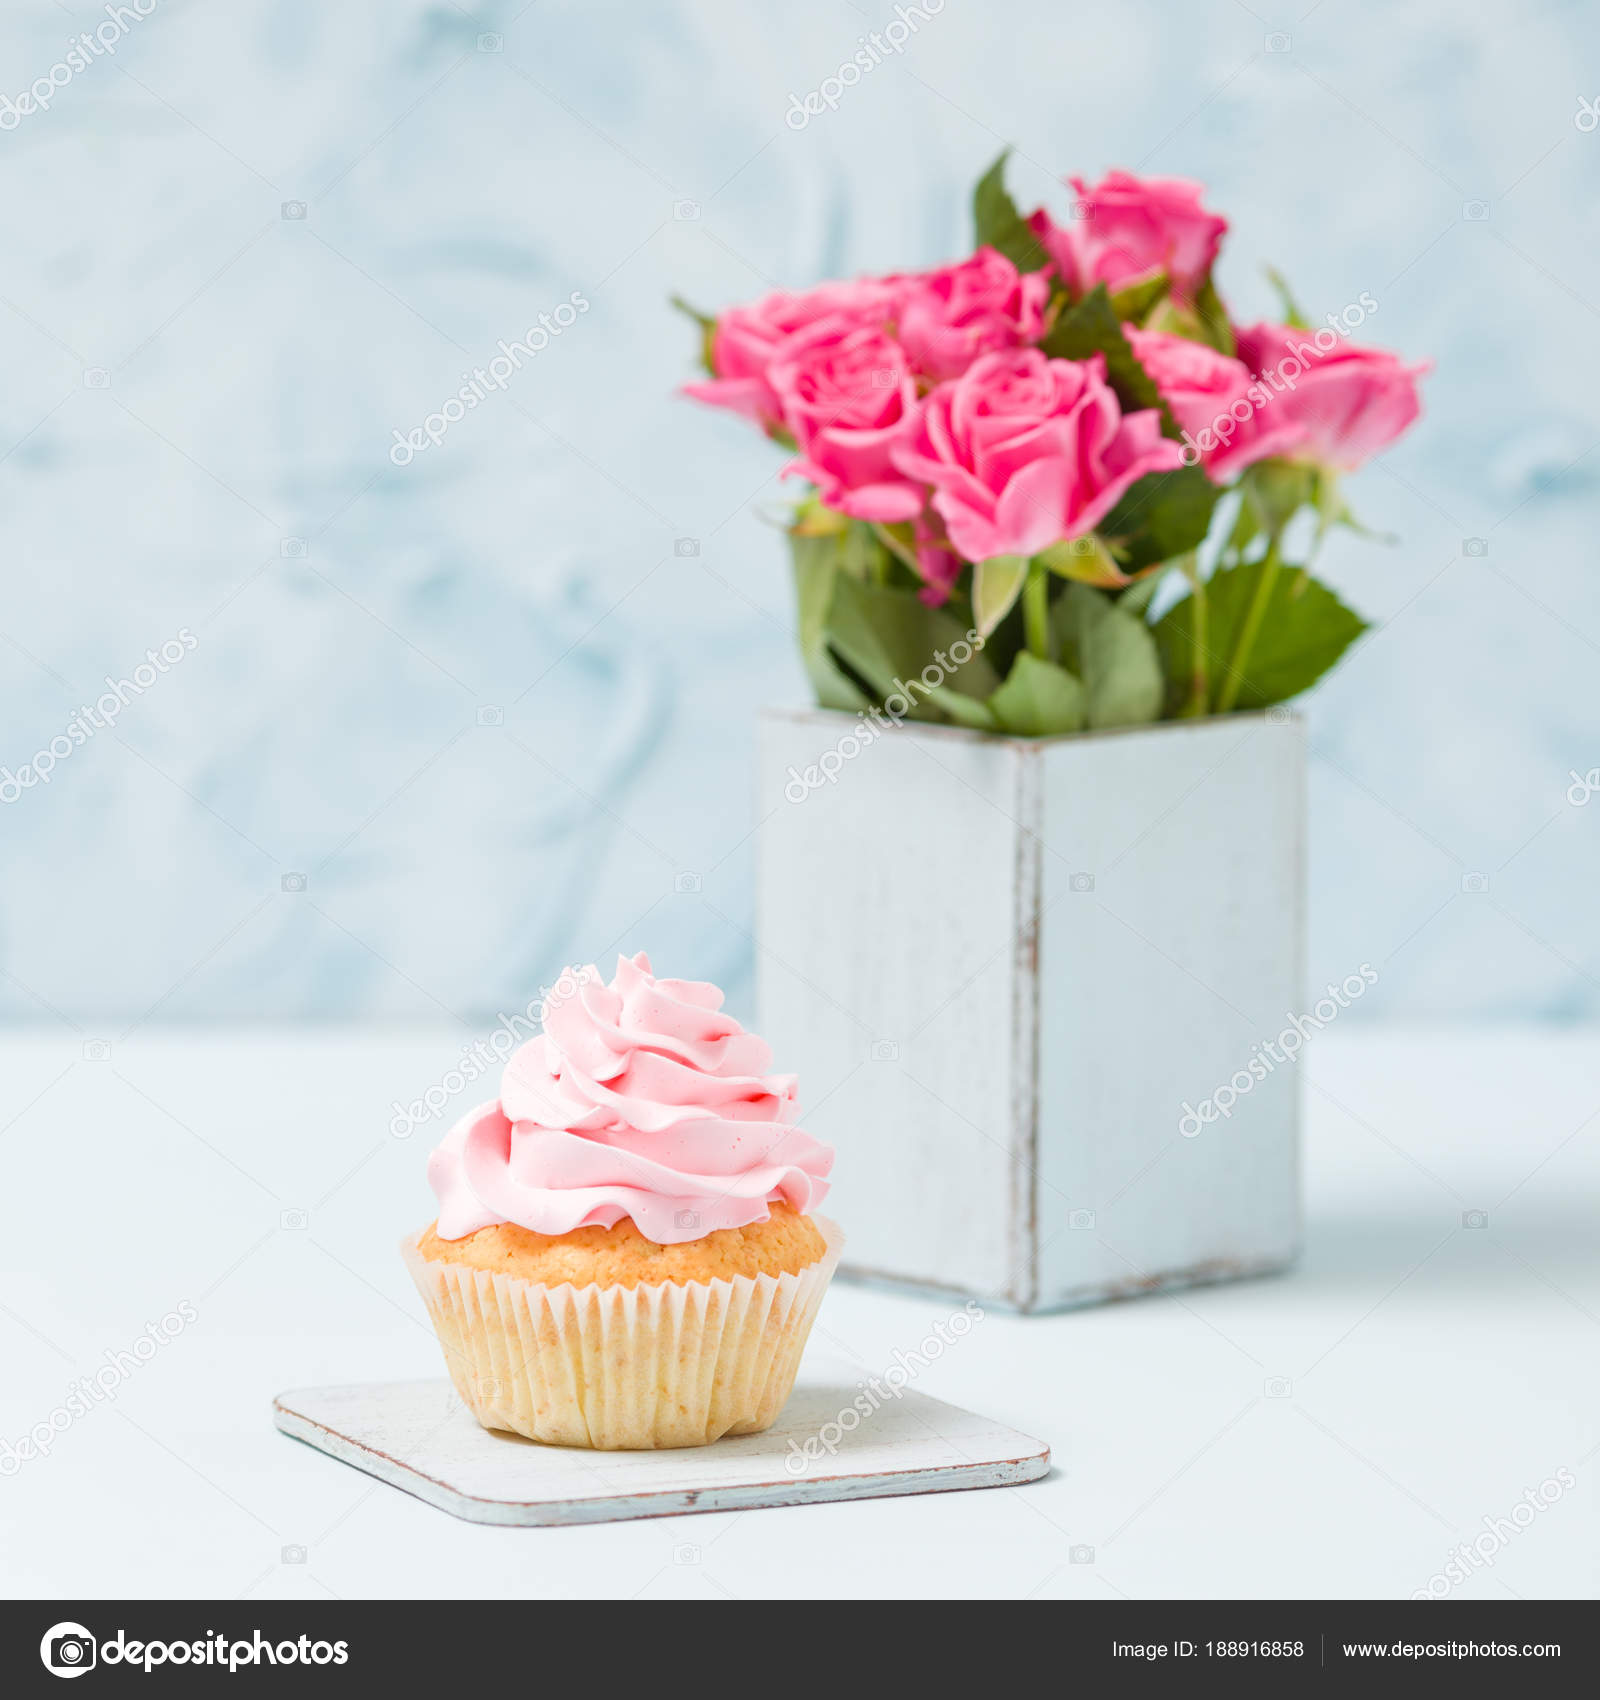 Décoration De Cupcake Cupcake With Pink Decoration And Bouquet Of Pink Roses In Retro